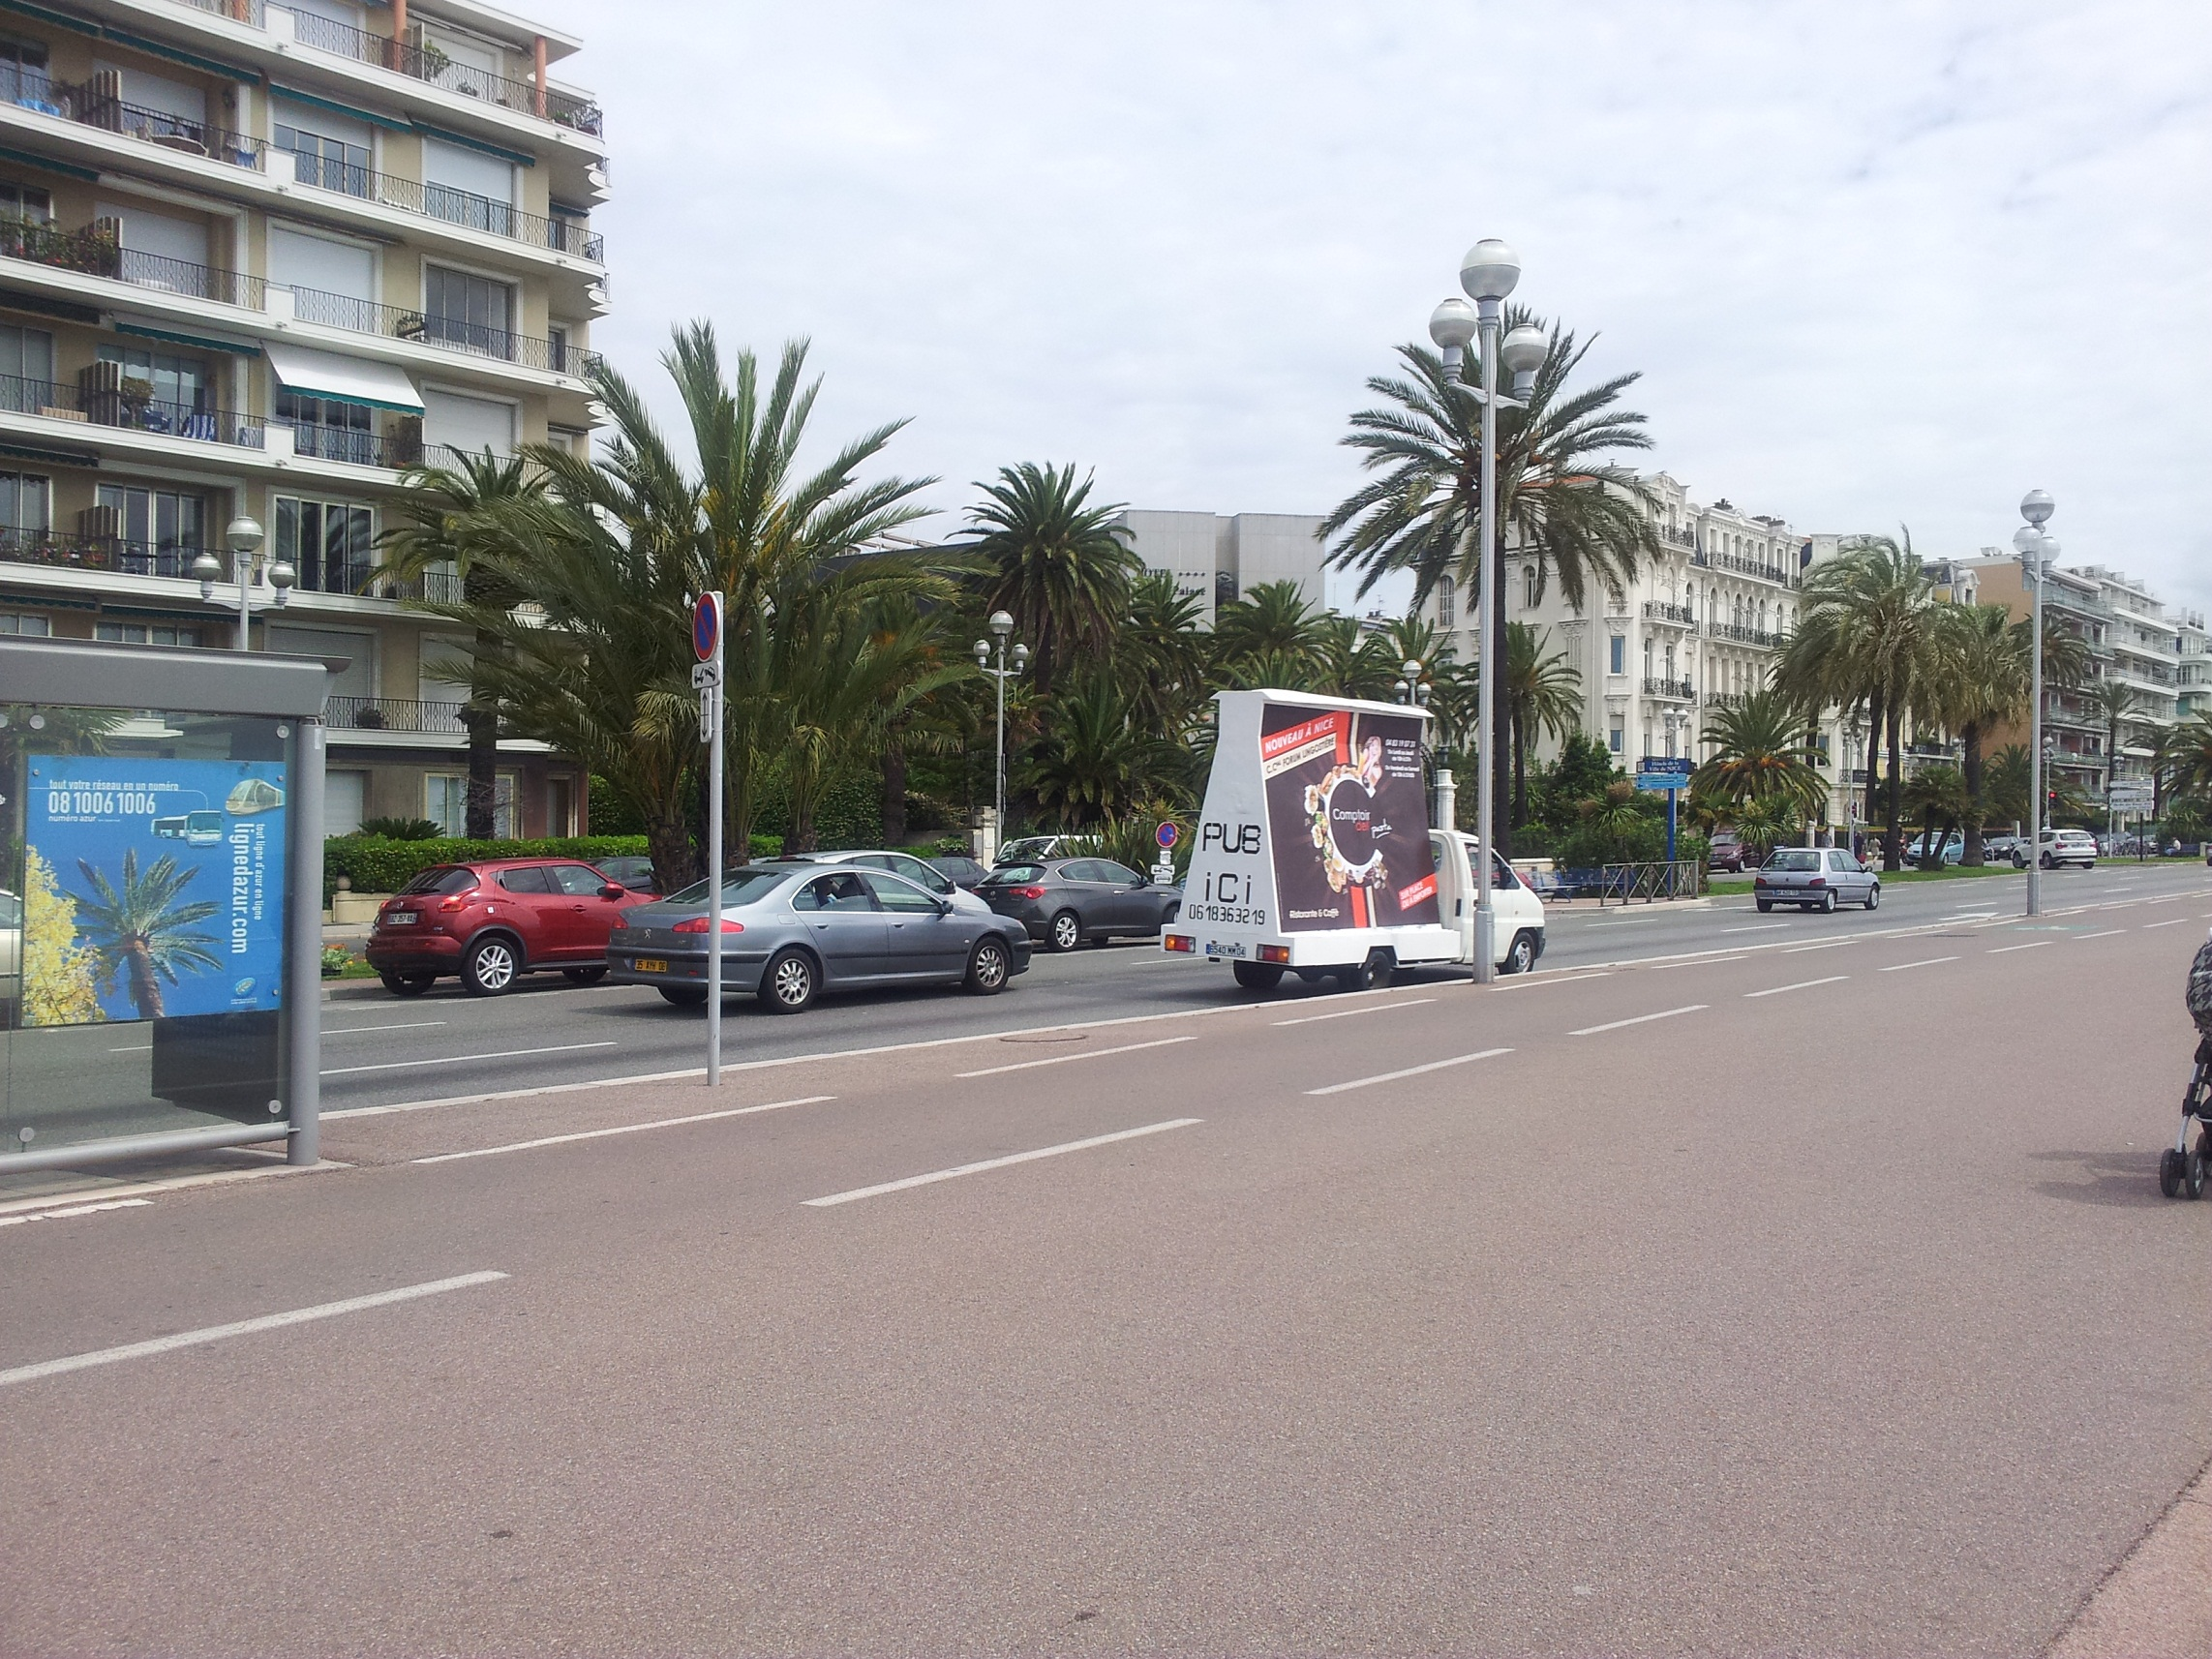 publicit mobile lyon camion publicitaire marseille street marketing. Black Bedroom Furniture Sets. Home Design Ideas